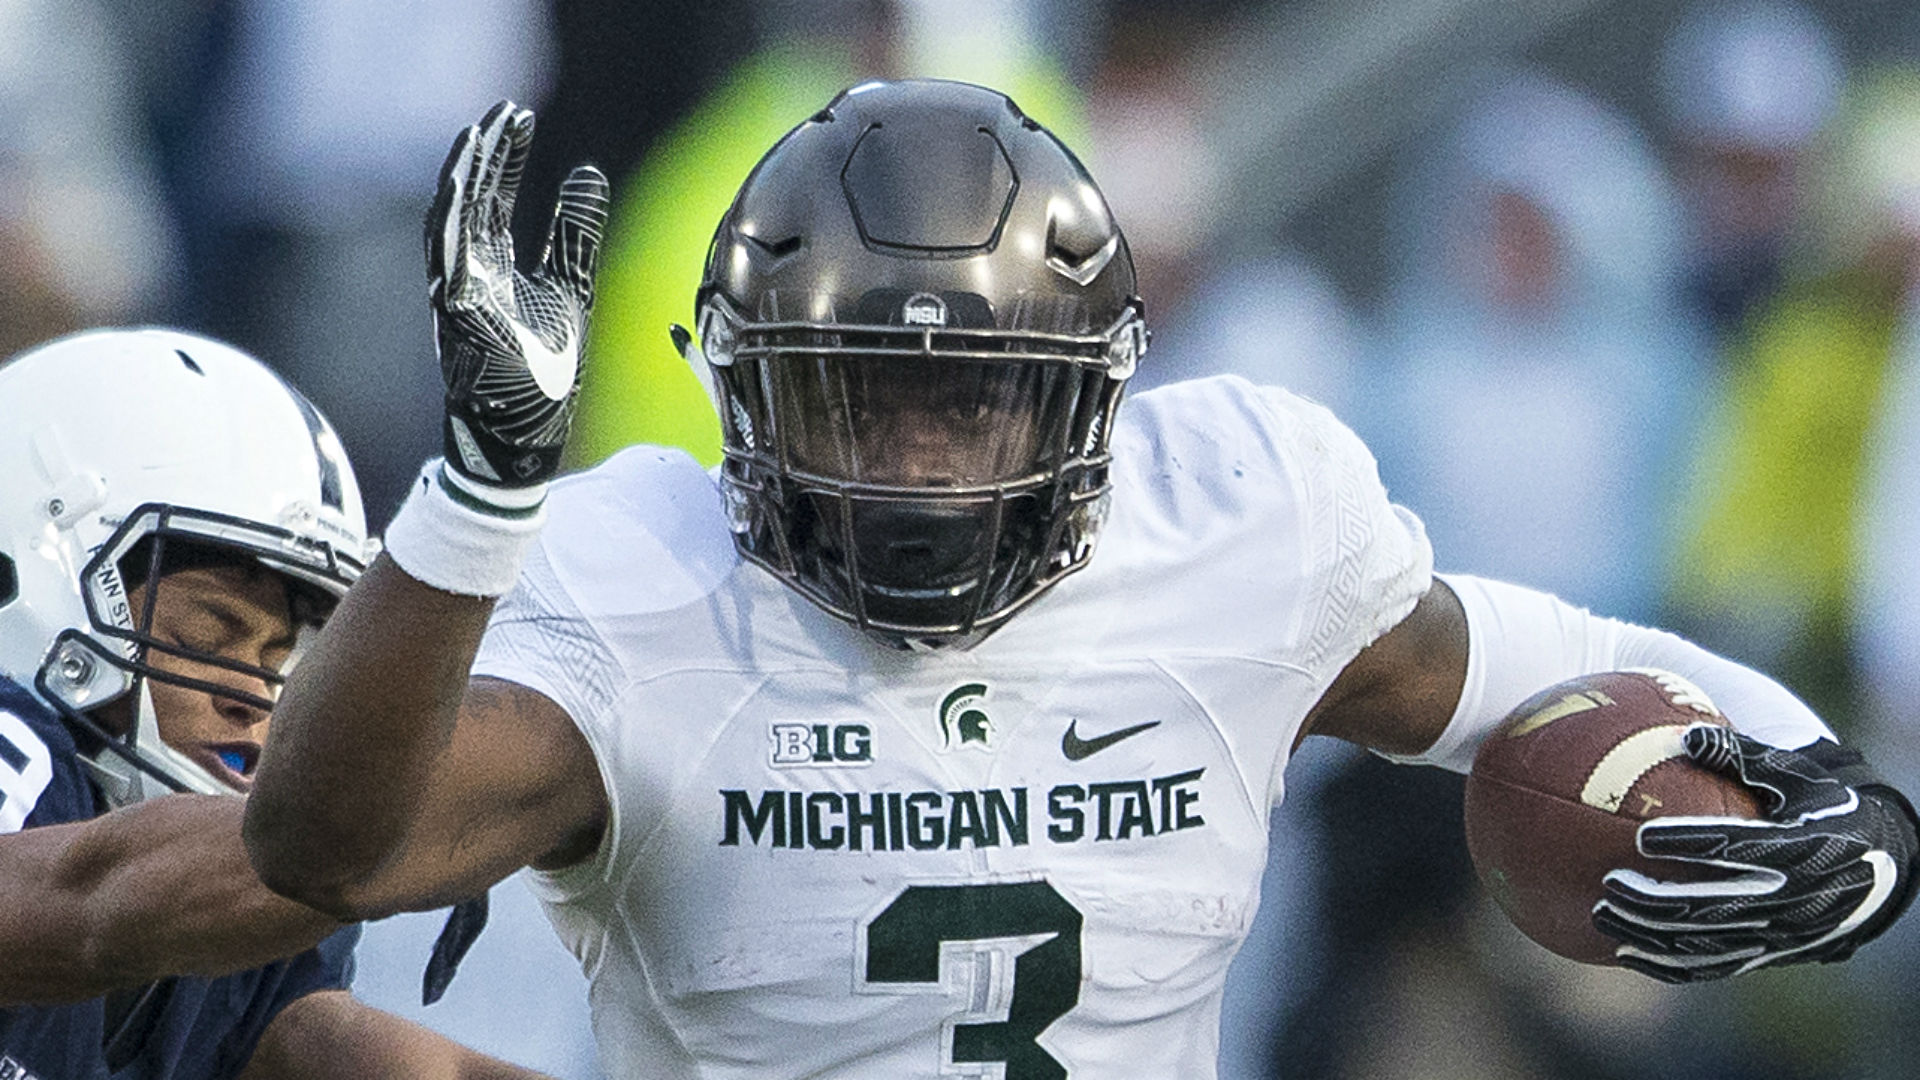 MSU Junior Running Back LJ Scott Arrested for Driving with Suspended License